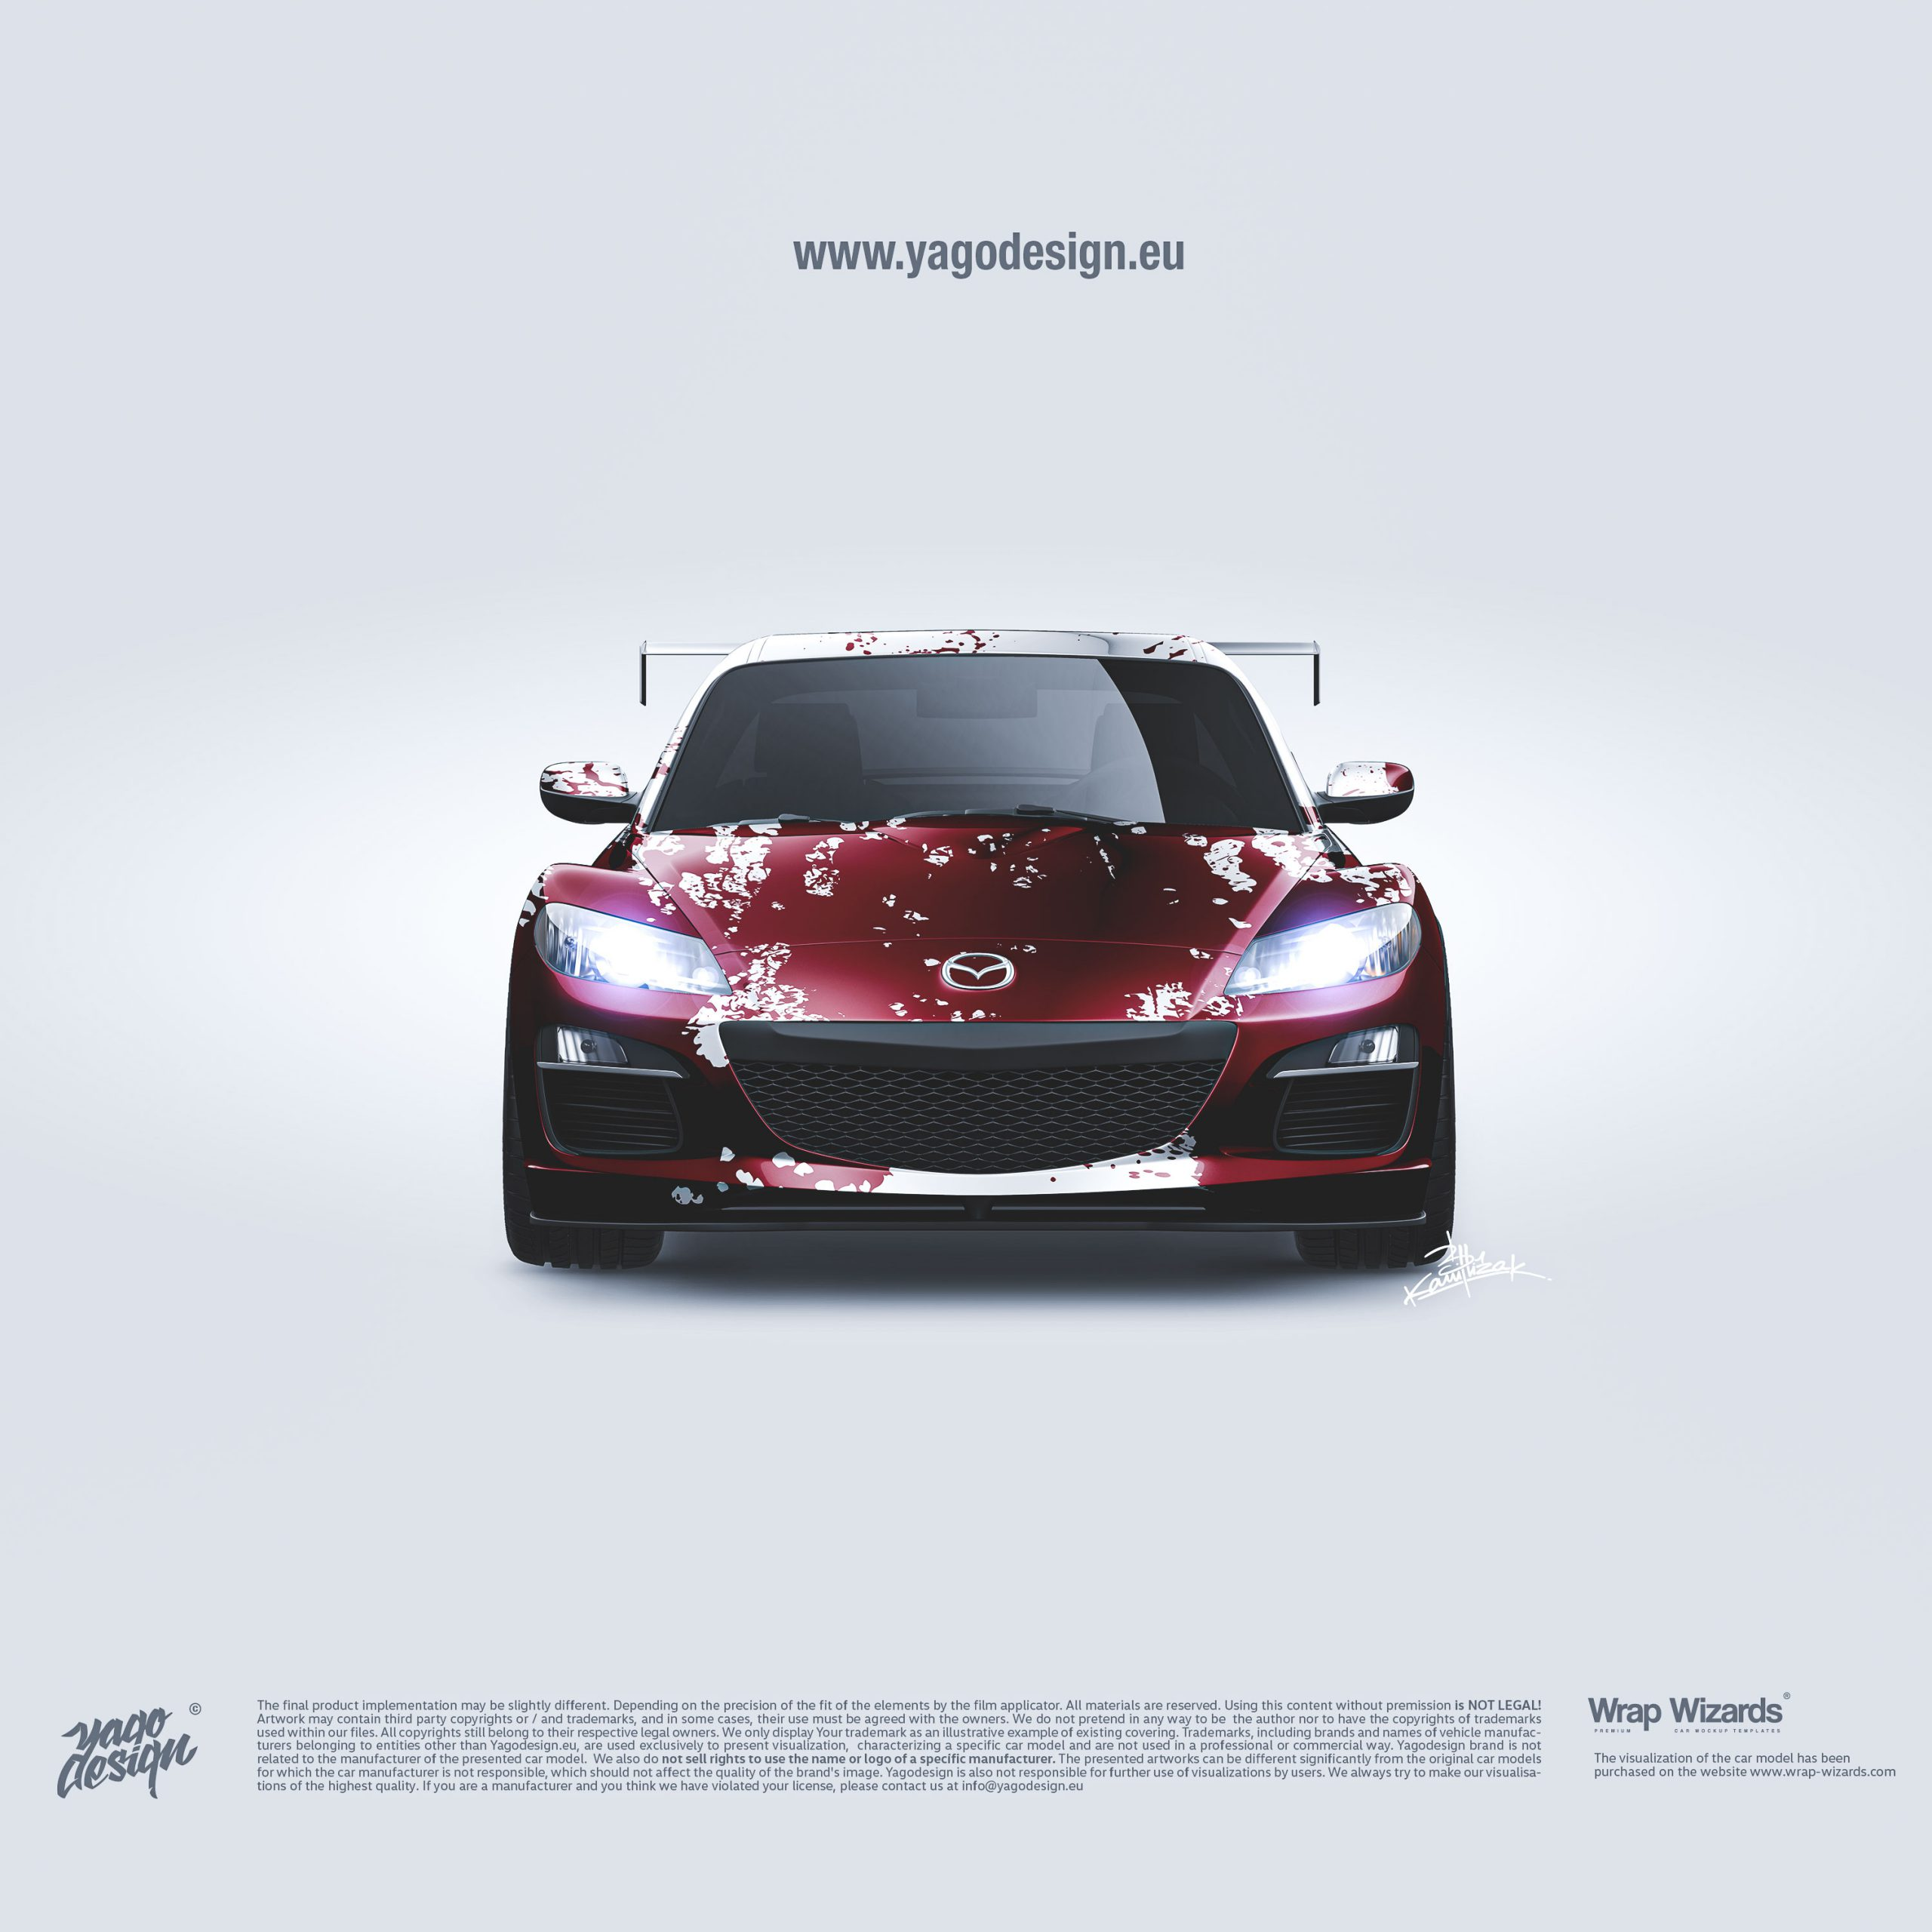 Mazda-RX-8-by-Yagodesign-Car-Wrapping-Automotive-Design-Studio4-scaled